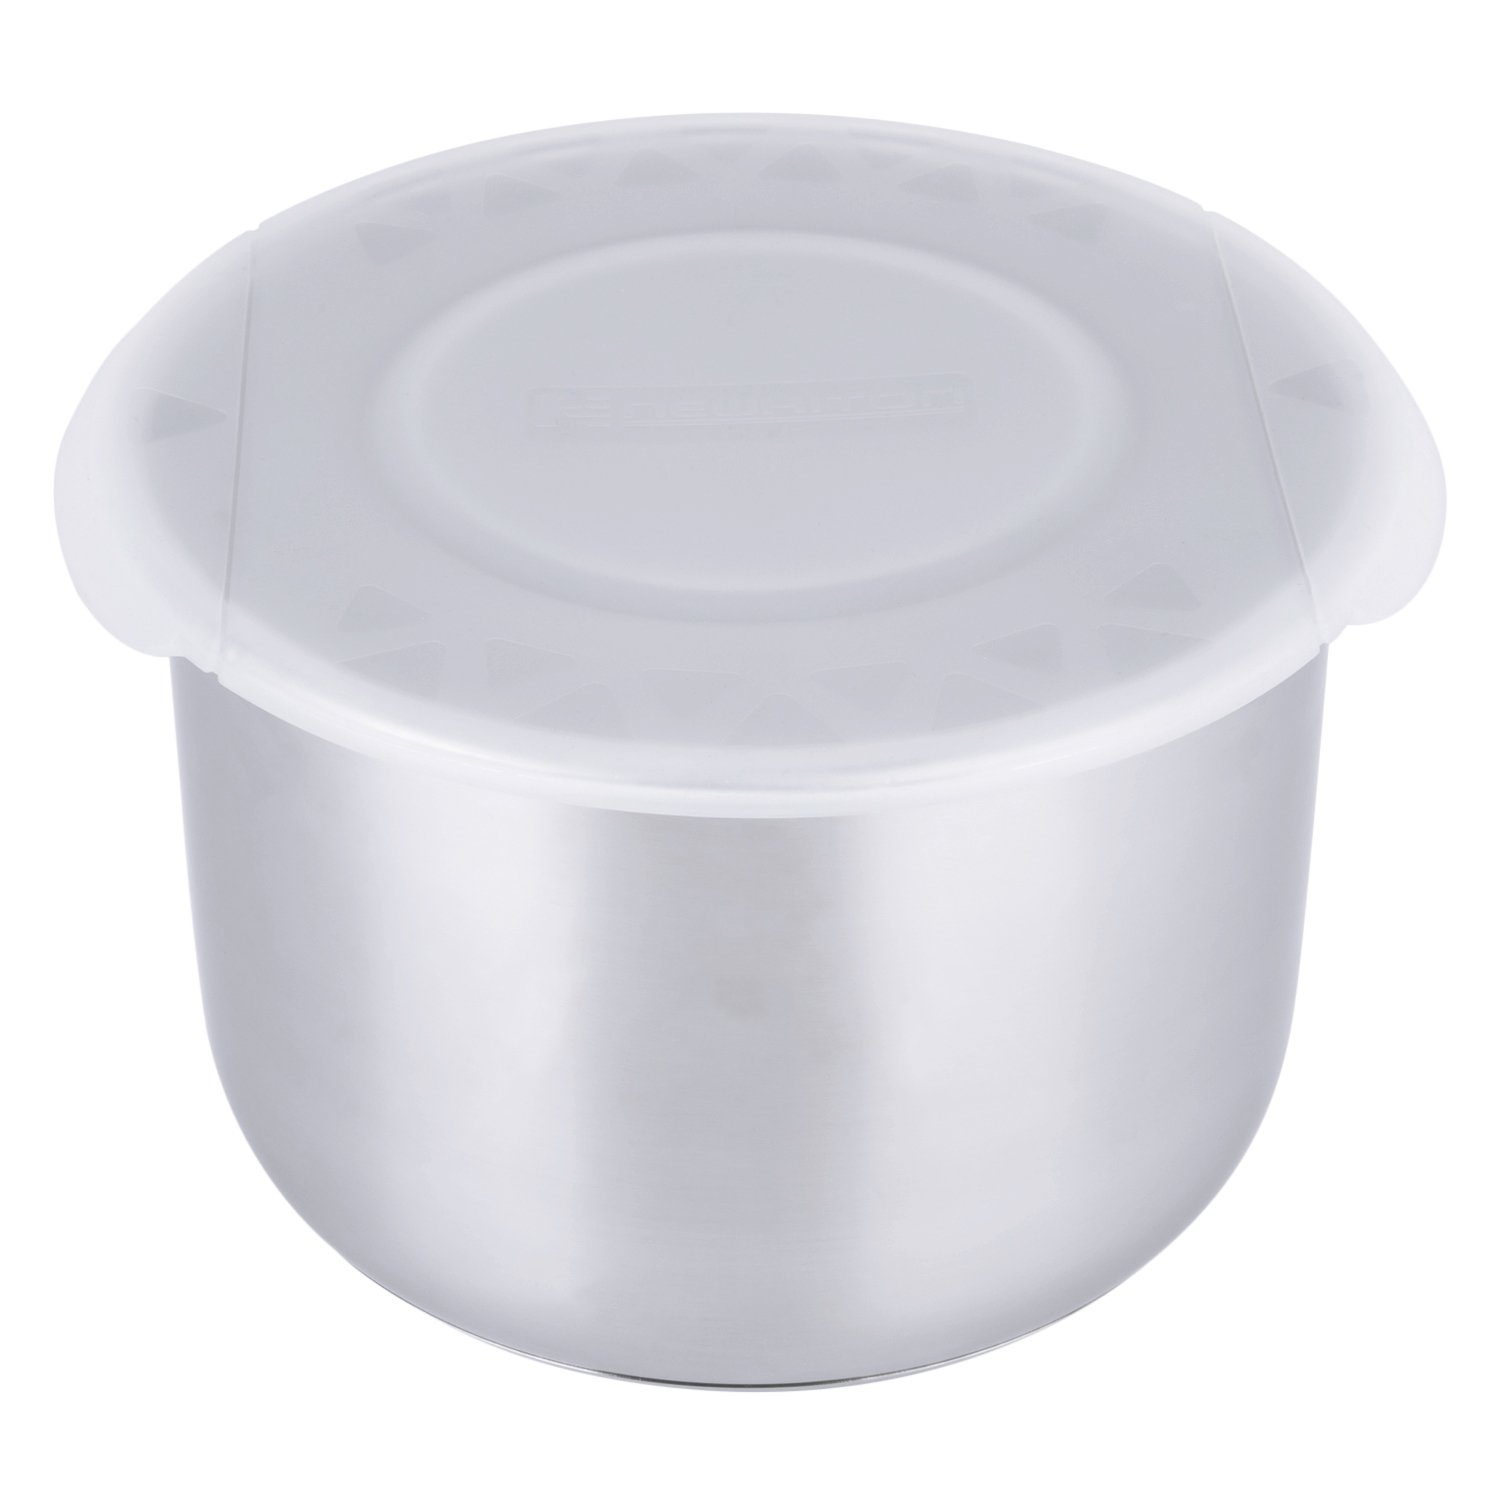 Silicone Lid Cover for Insta Pot Inner Pots (BPA-Free) - Fits IP-DUO60, IP-LUX60, IP-DUO50, IP-LUX50, Smart-60, IP-CSG60 and IP-CSG50 (Blue) Gooray IPLBLUE-02